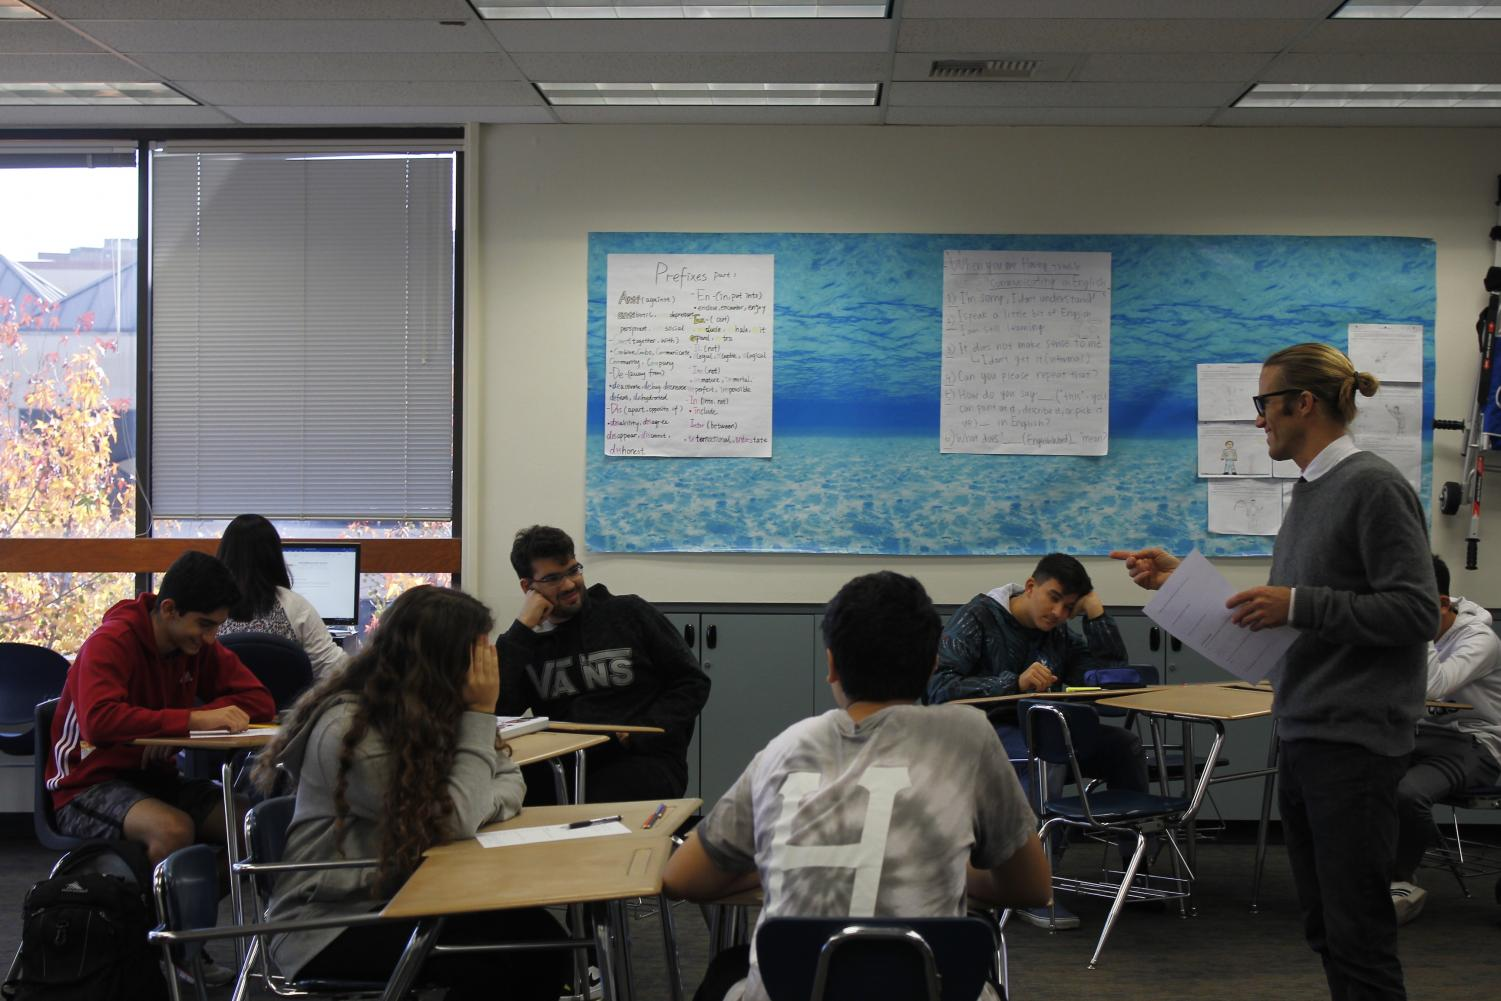 ELD teacher Dan Kozak gives instructions to his students during class.